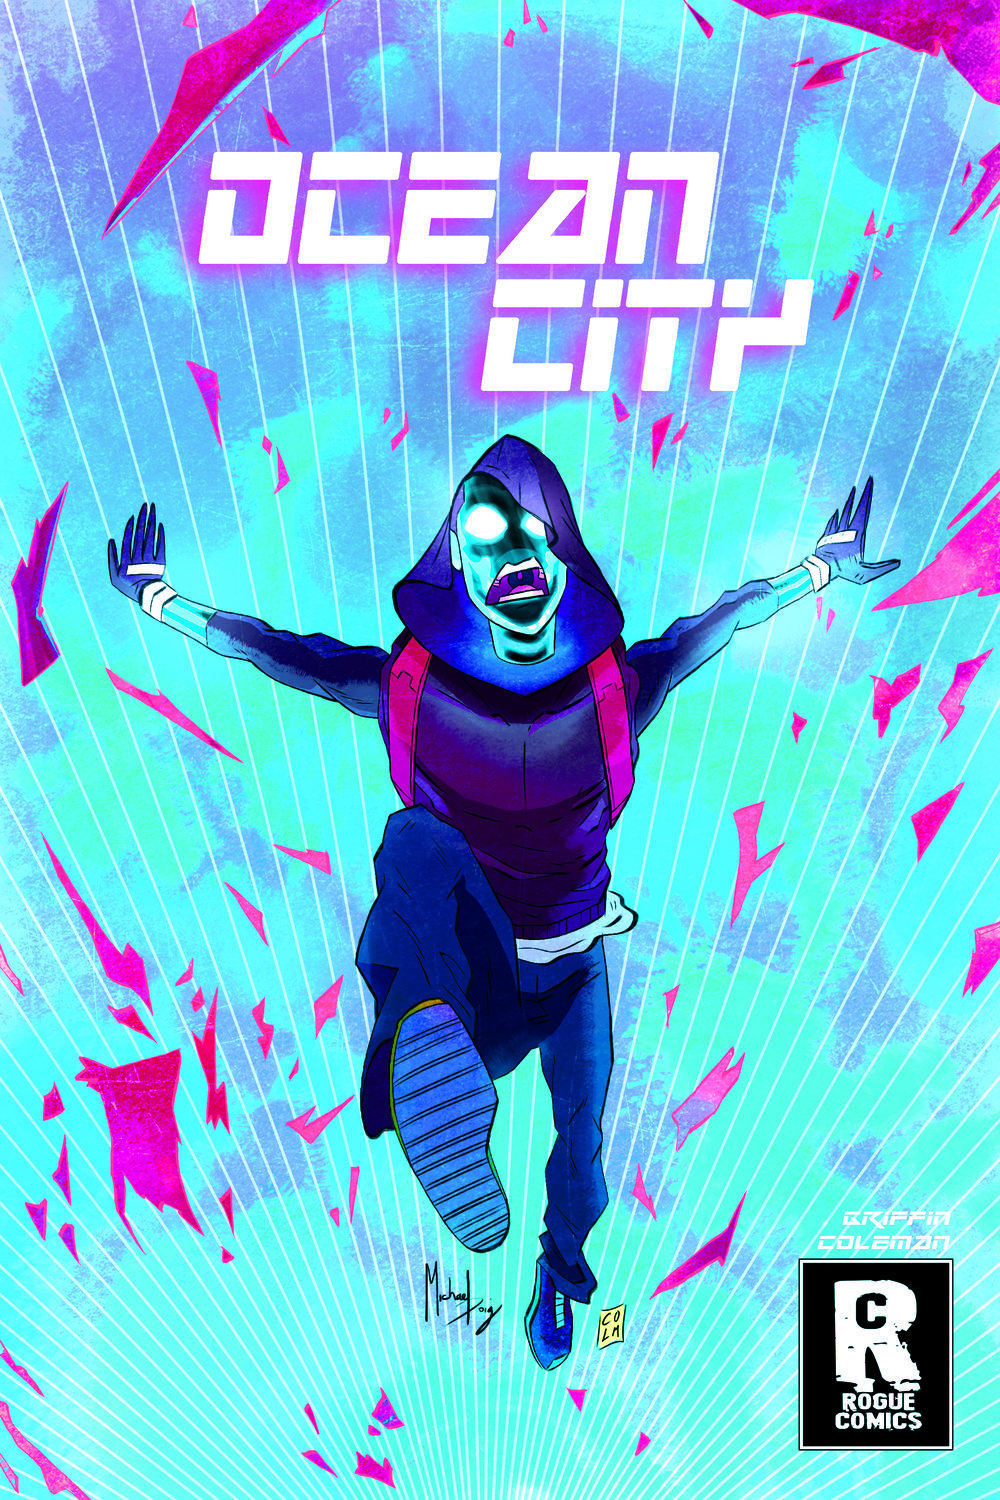 Issue #4 Cover.jpg